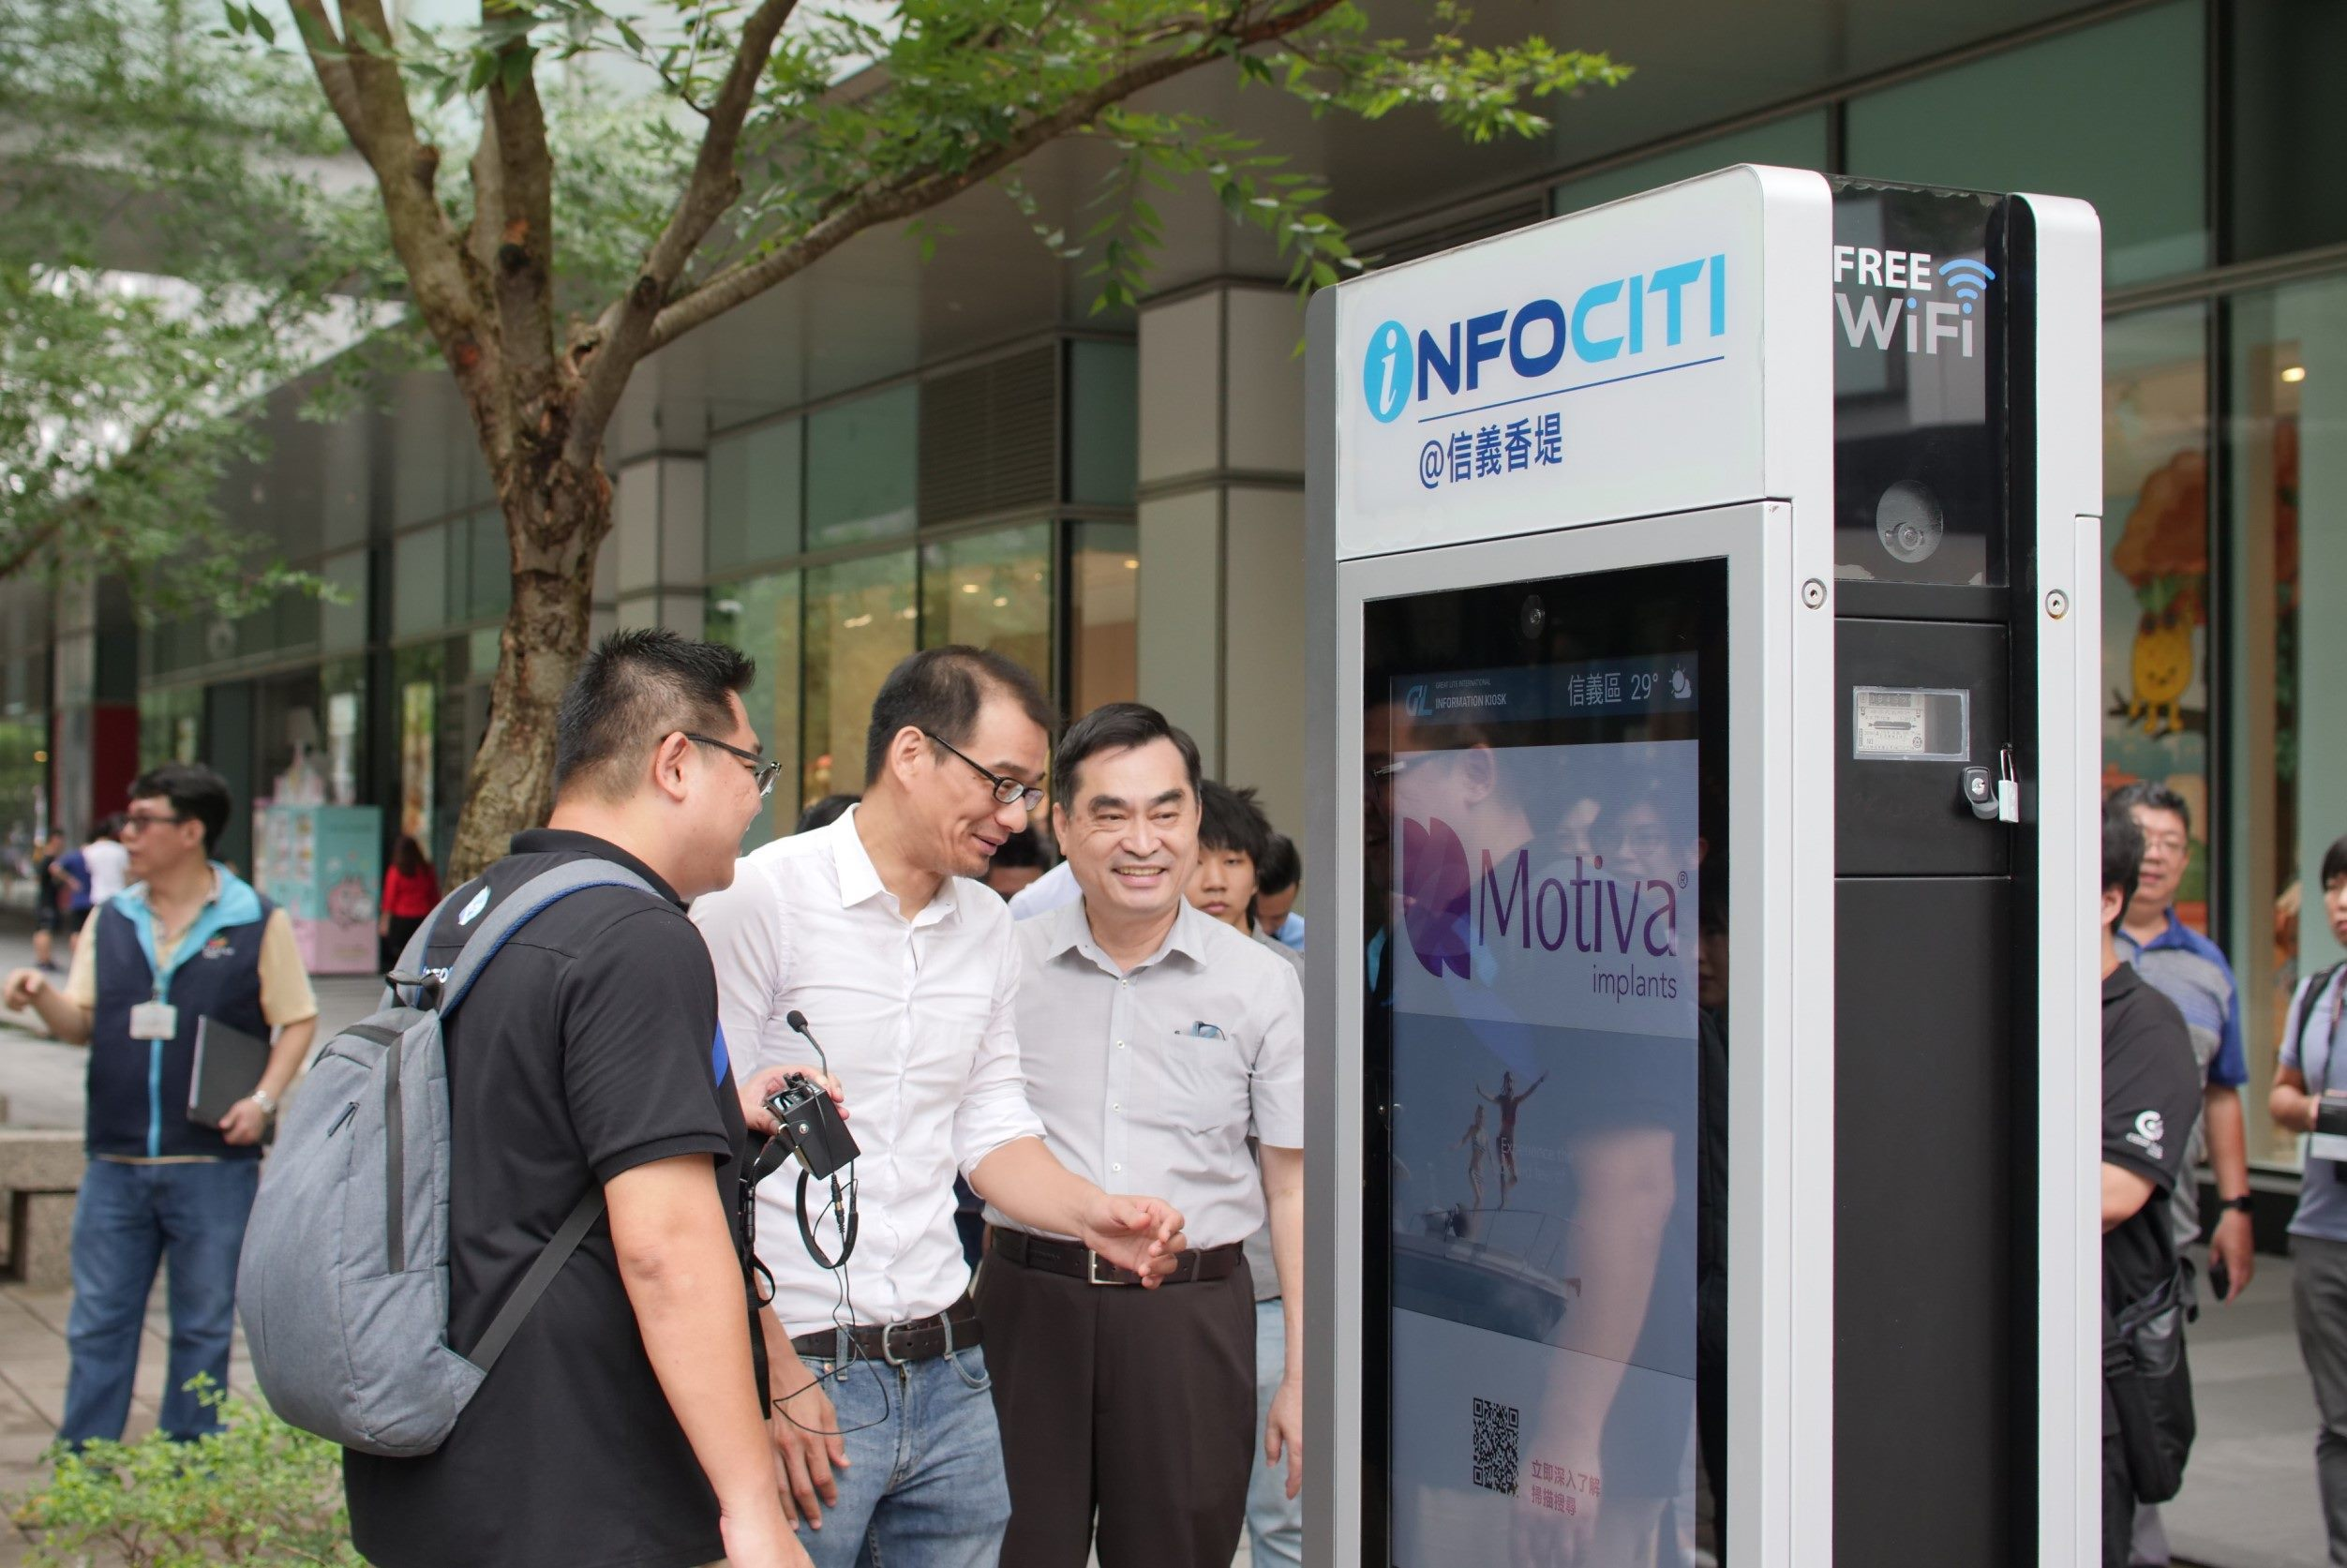 The newly installed multimedia kiosk in Xinyi Commercial District